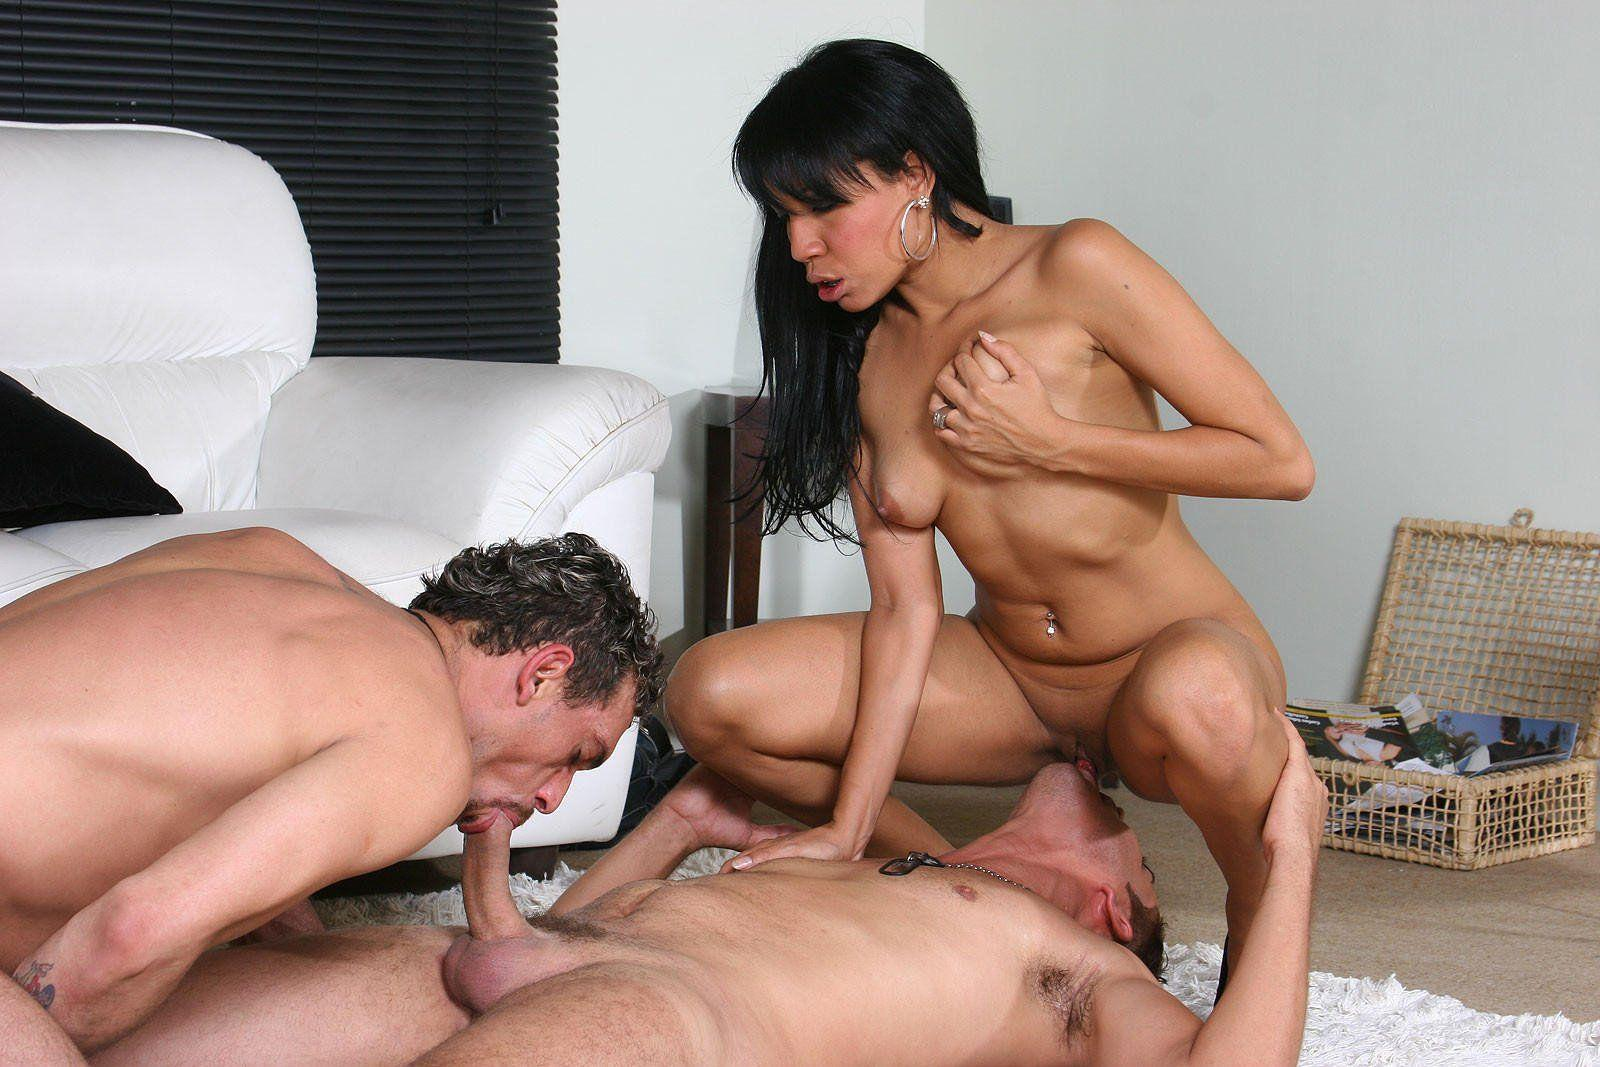 Affair bisexual looking sexual woman